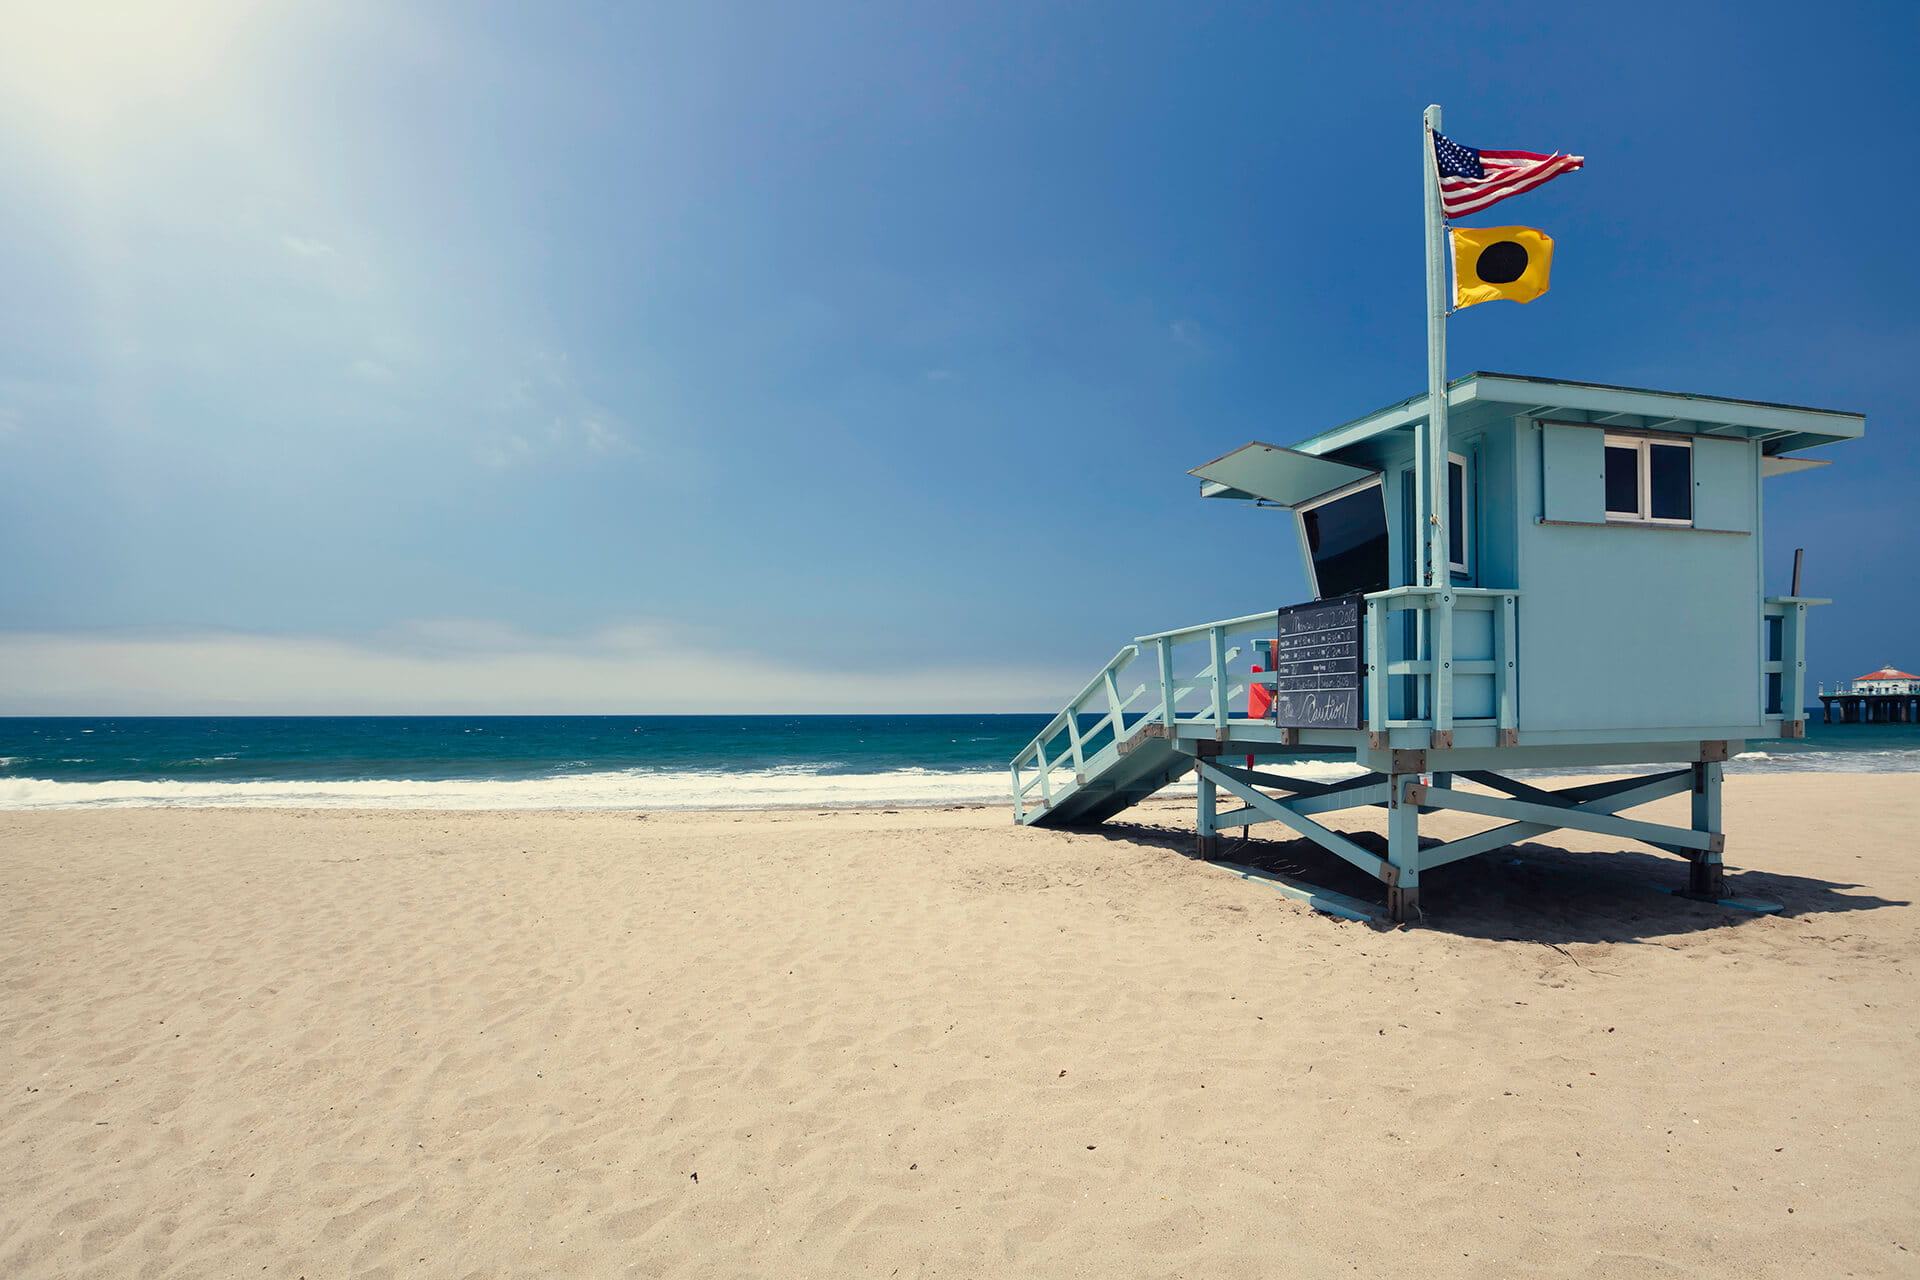 Los Angeles Lifeguard Tower